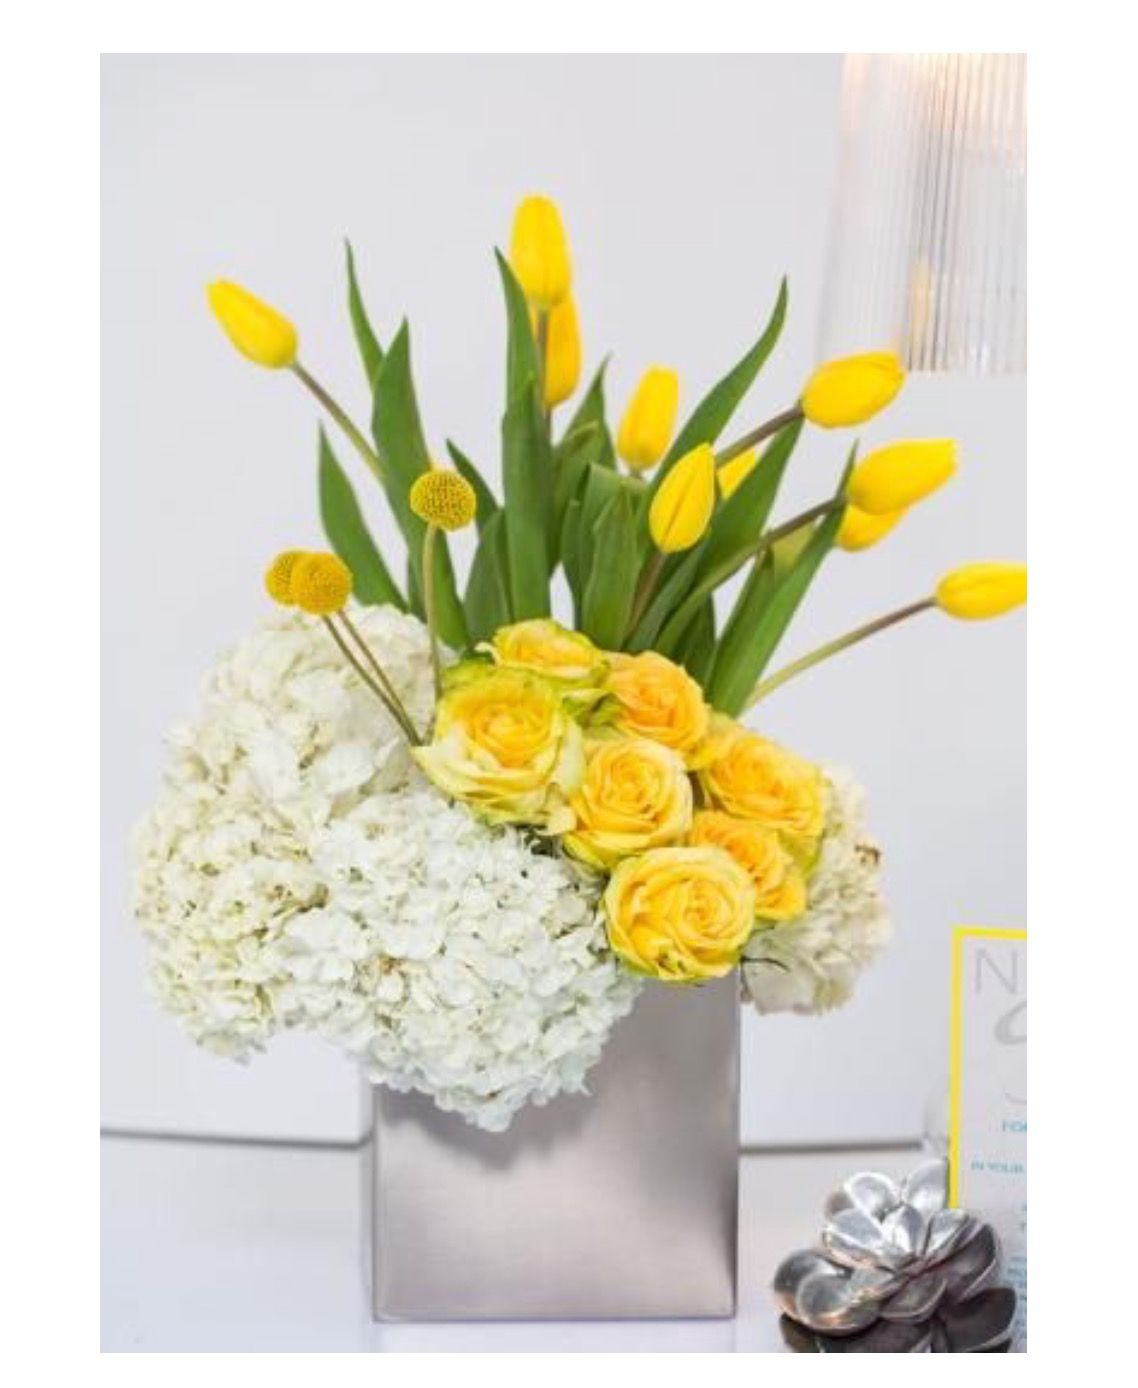 Pin By Sheila Clark On Flowers I Love Pinterest Floral